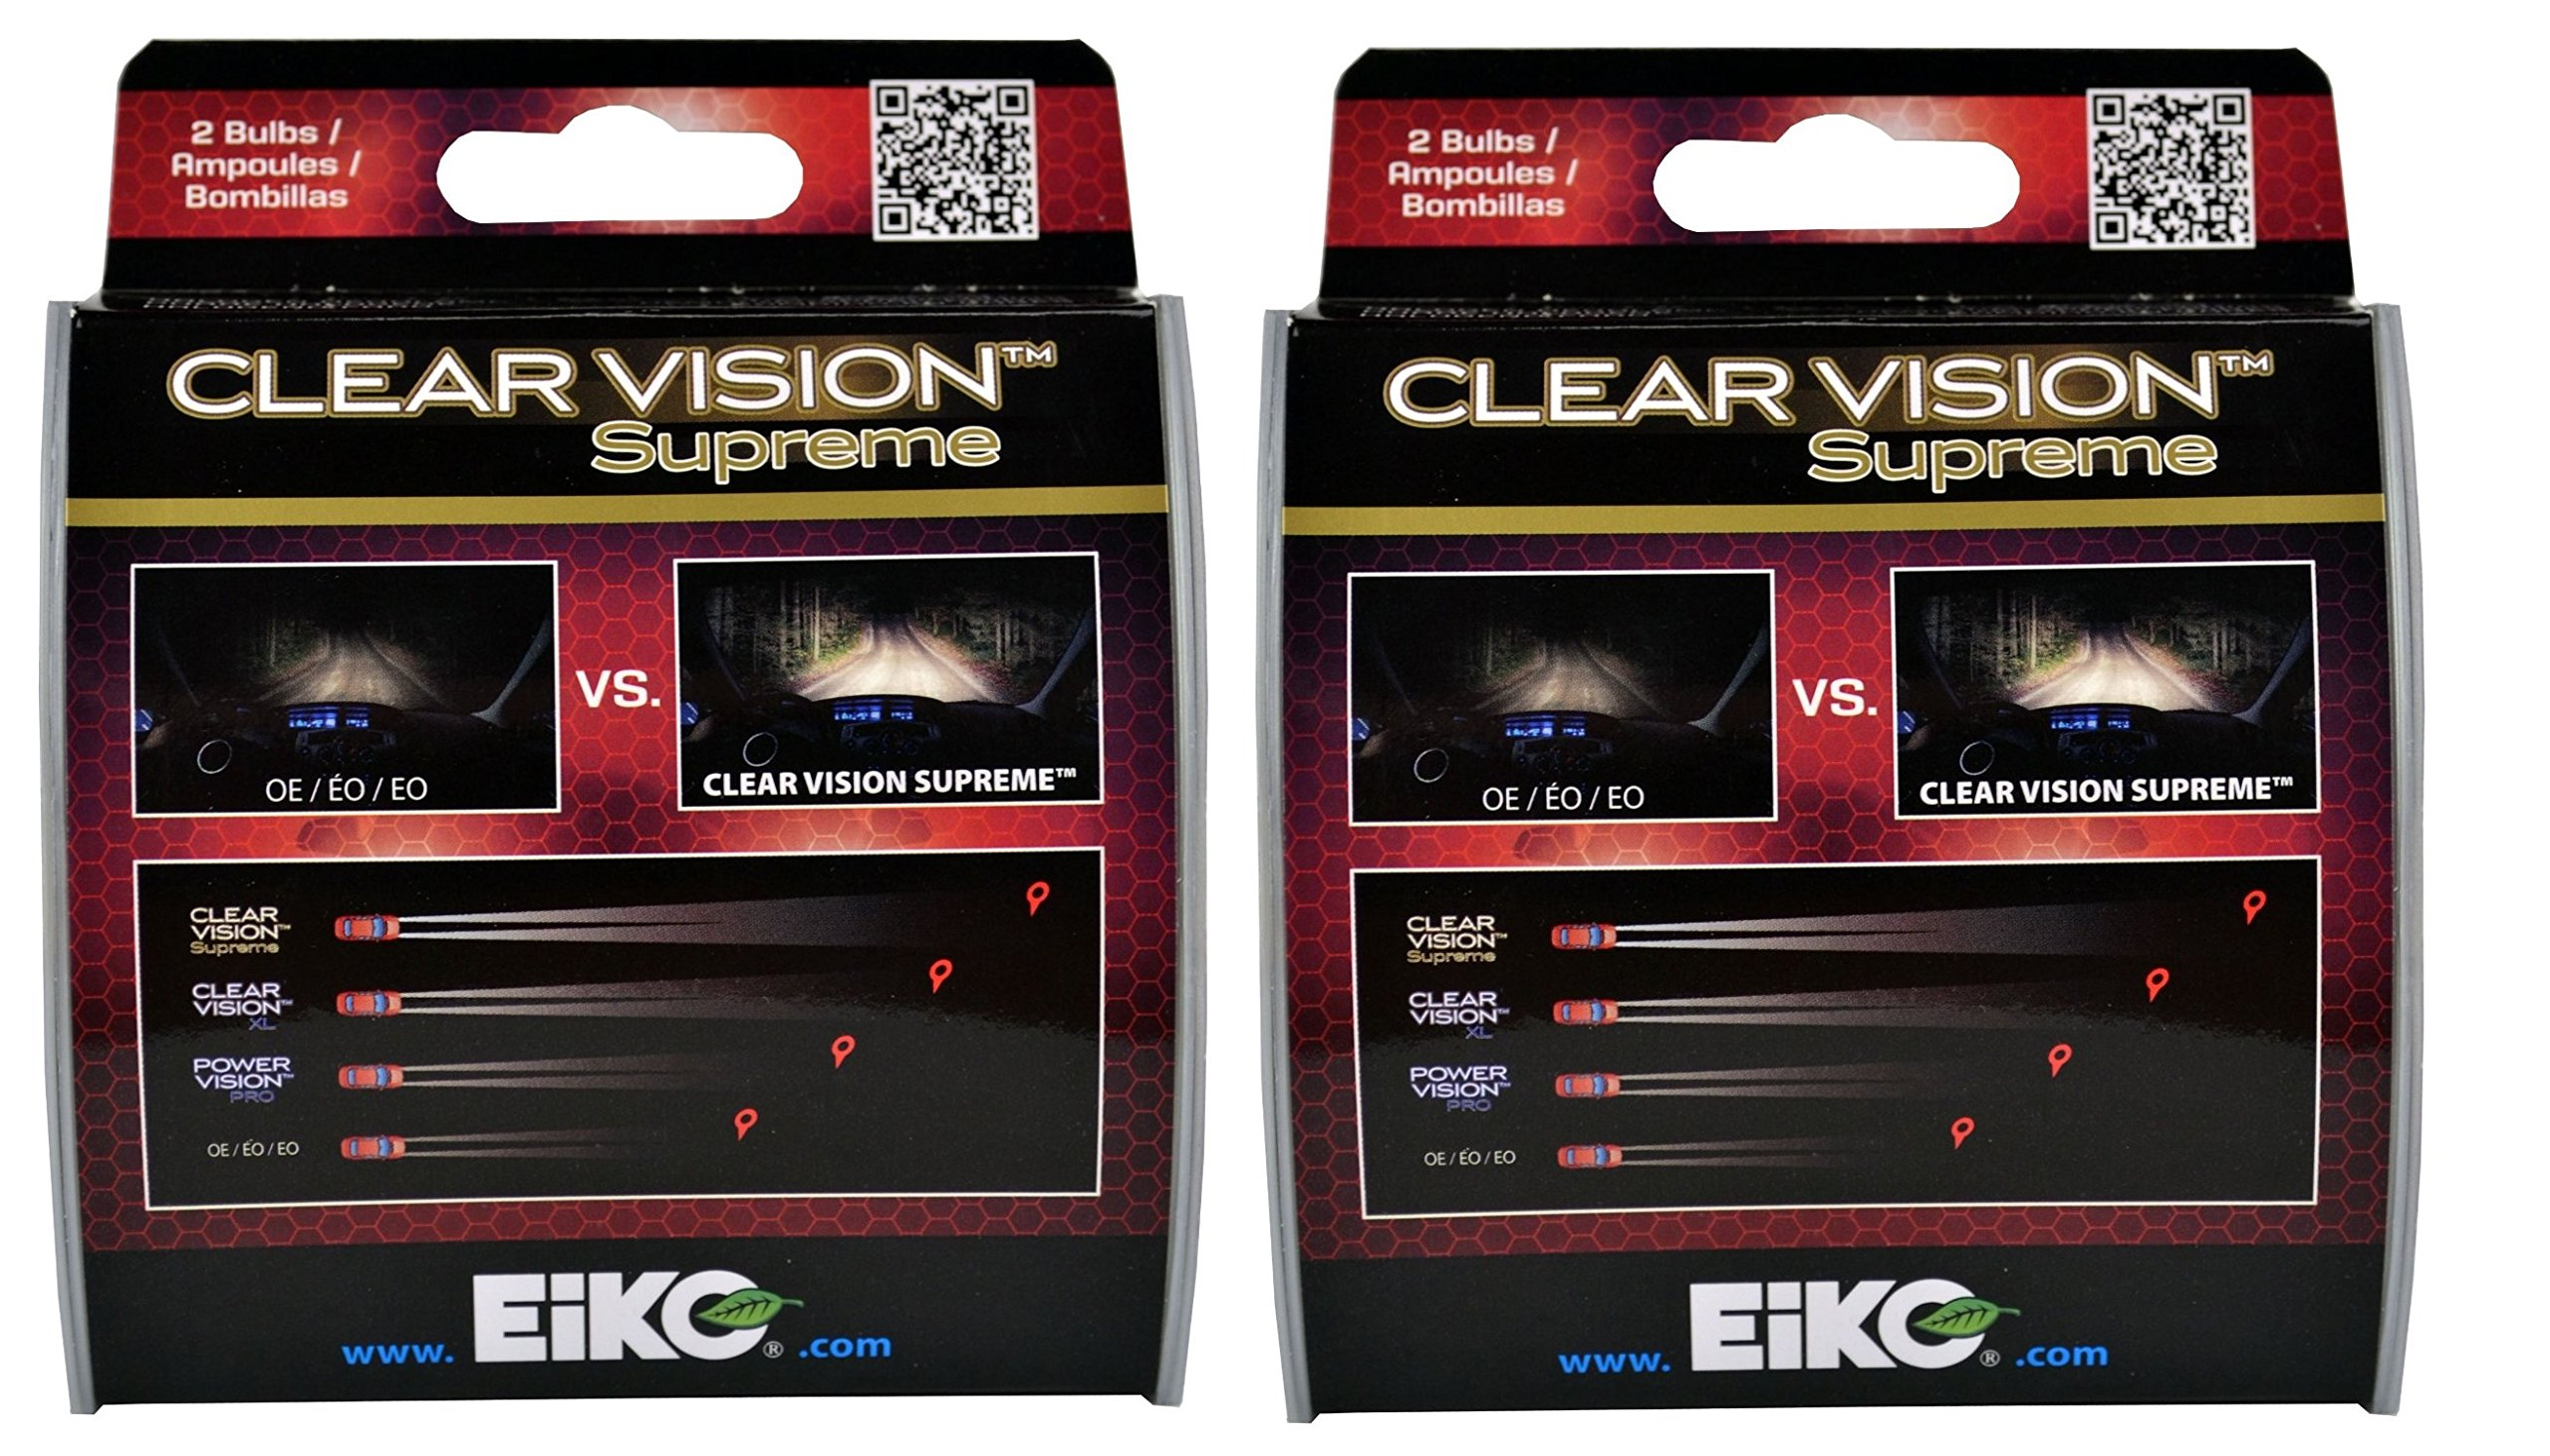 H7 55W ClearVision Supreme 2PK (4 Bulbs) by Eiko